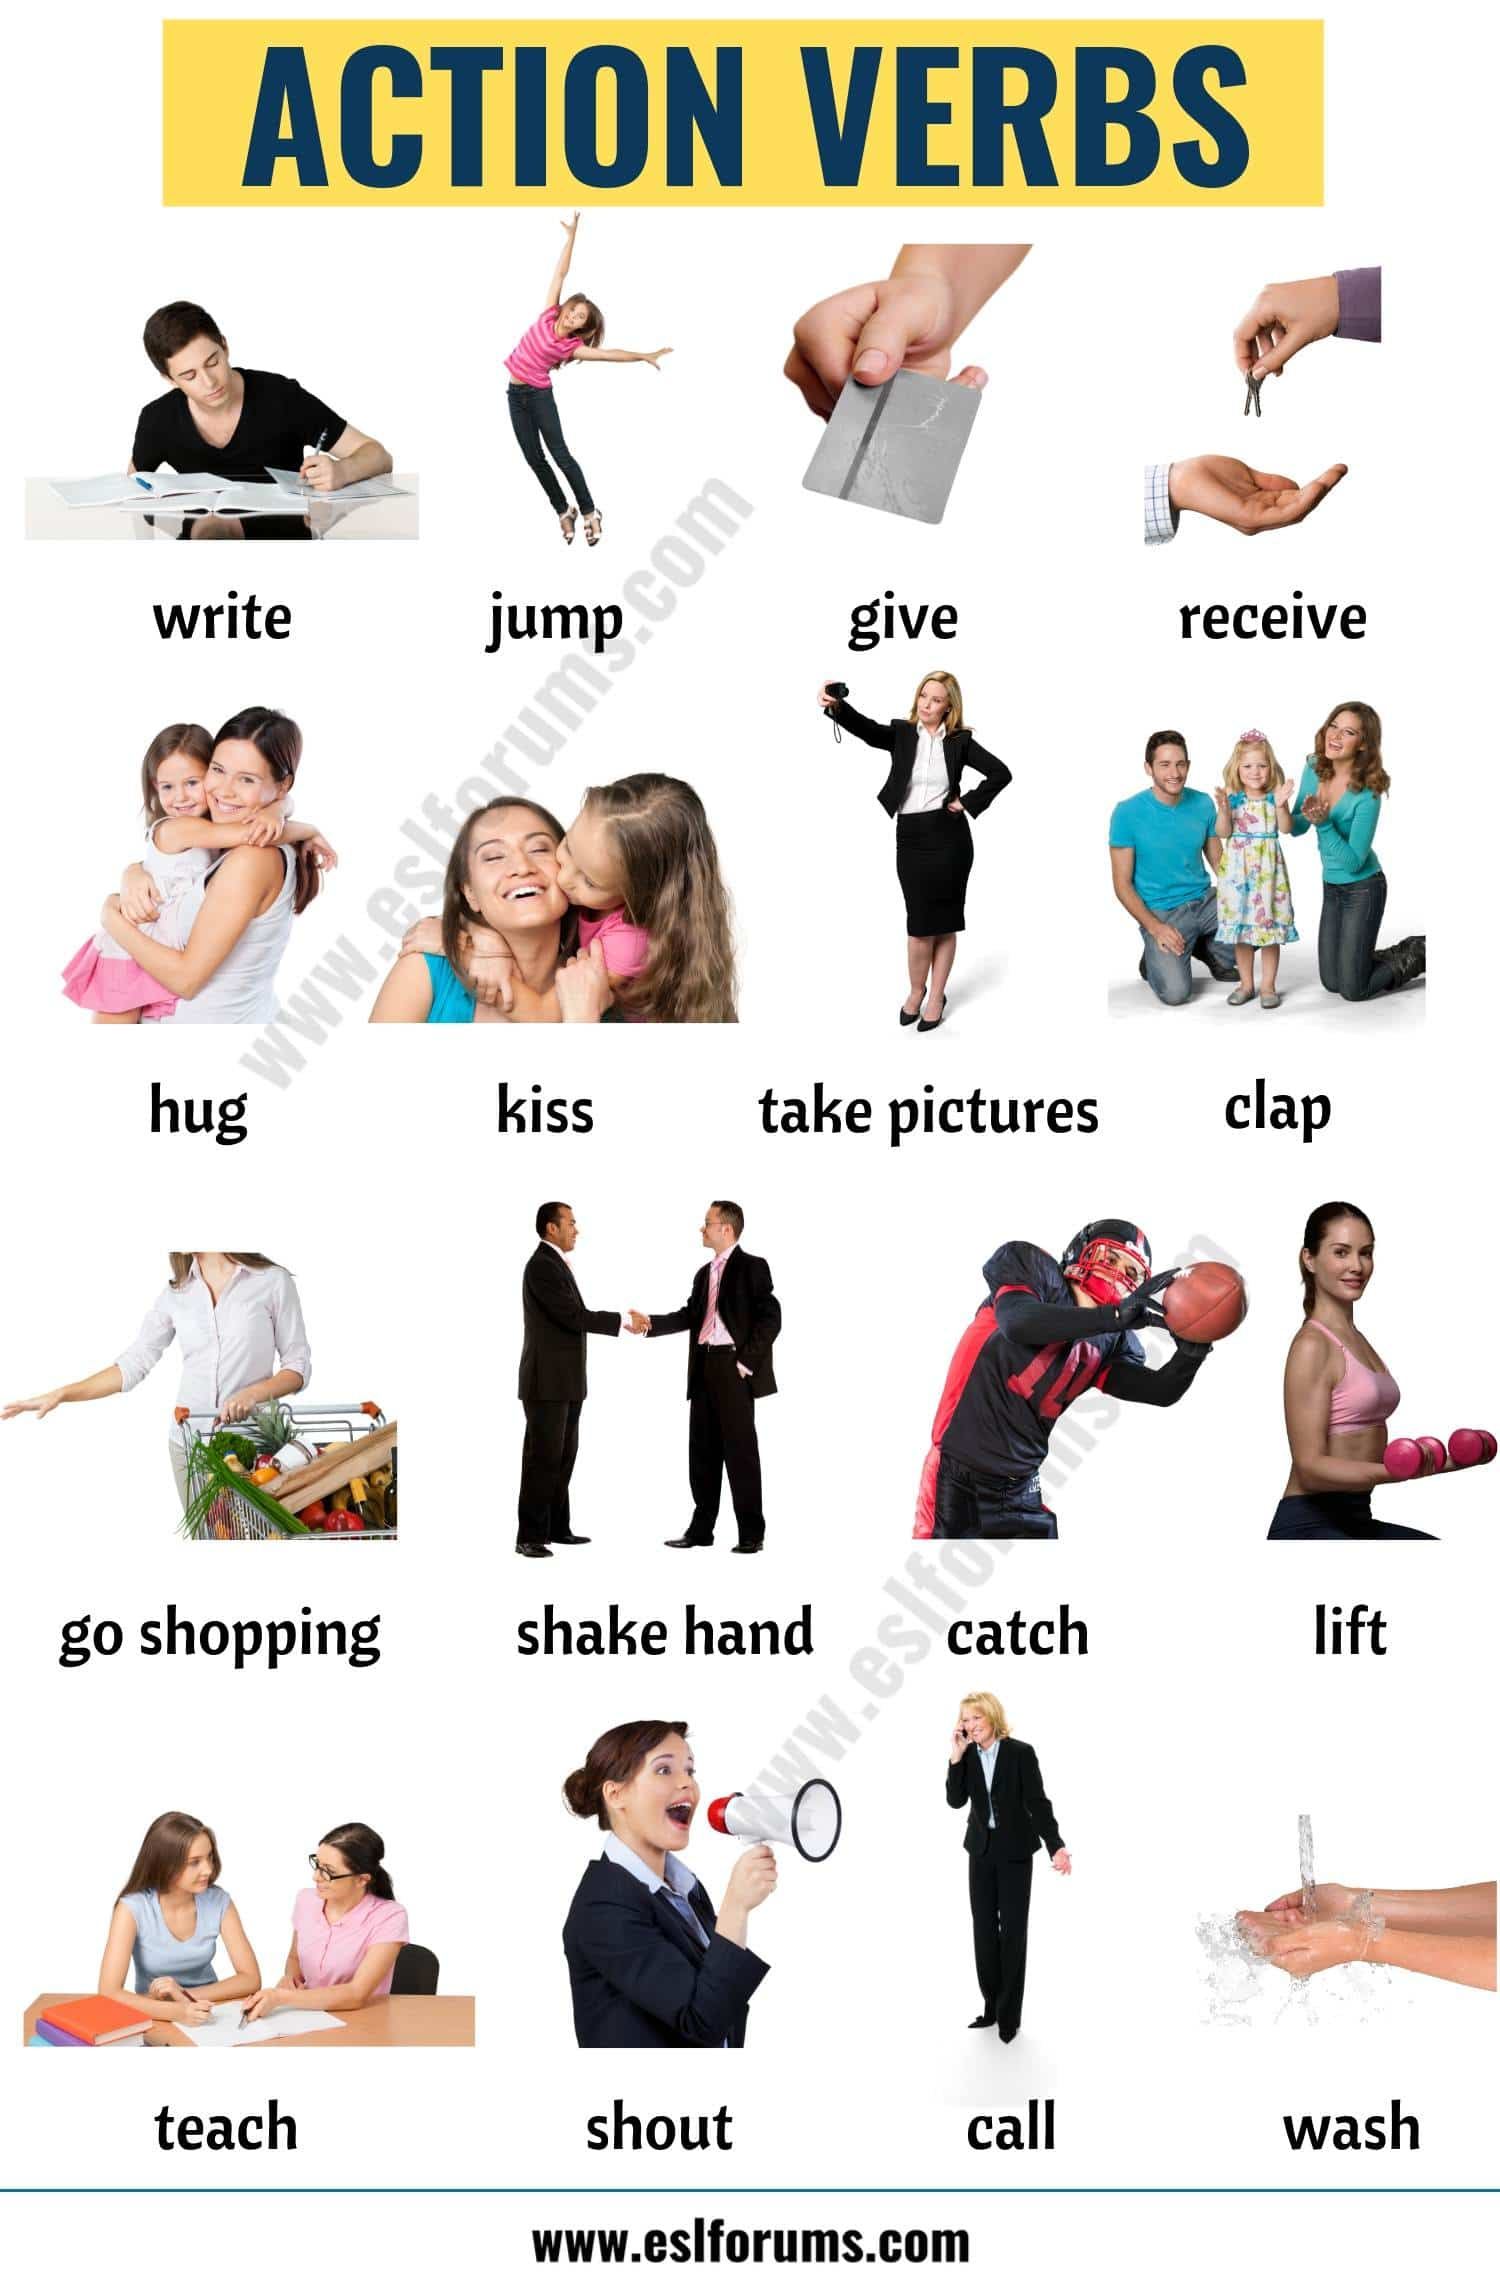 Action Verbs: List of 50+ Useful Action Words with the Pictures!